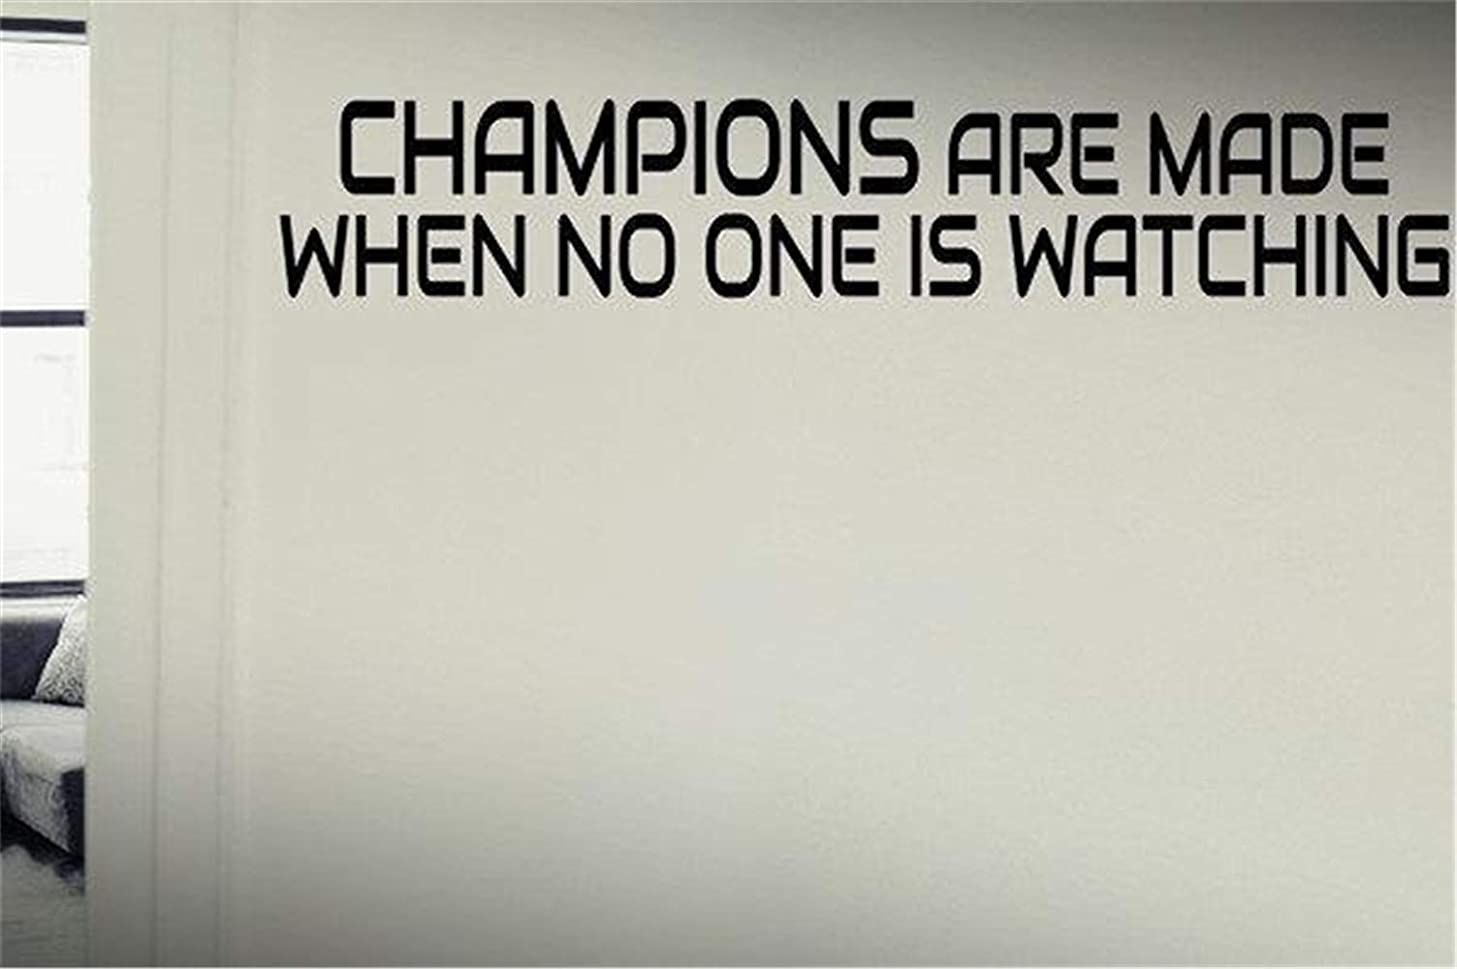 Comerya Vinyl Wall Decal Wall Stickers Art Decor Wall Sticker Champions are Made When No One is Watching